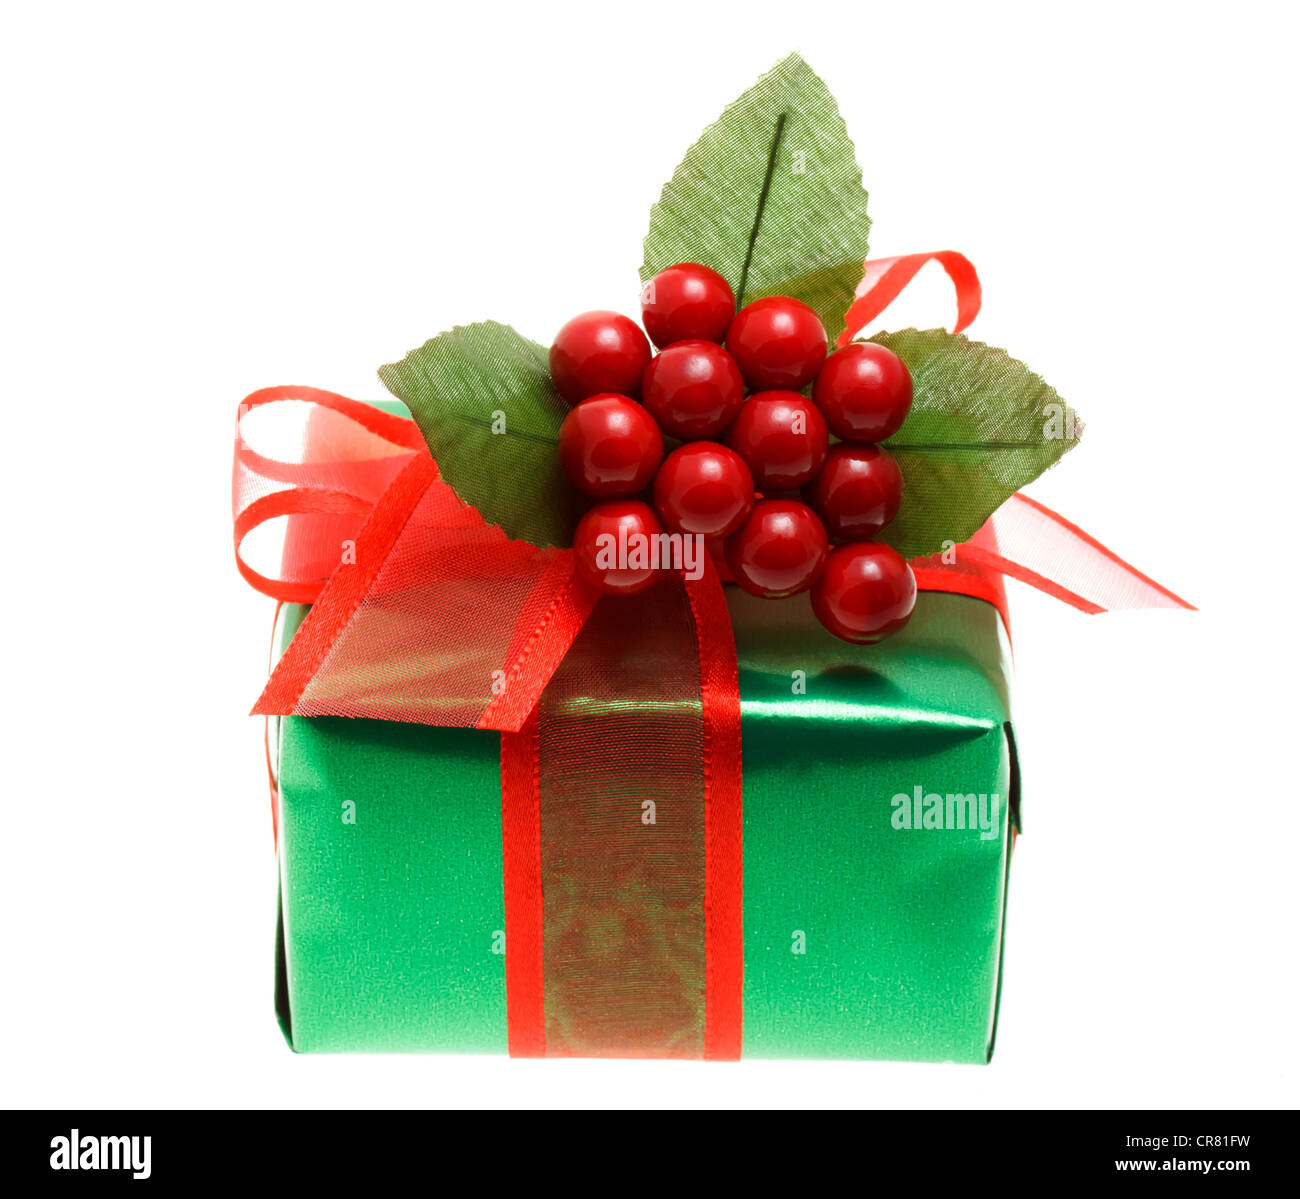 Christmas Present (Gift Box) - Stock Image